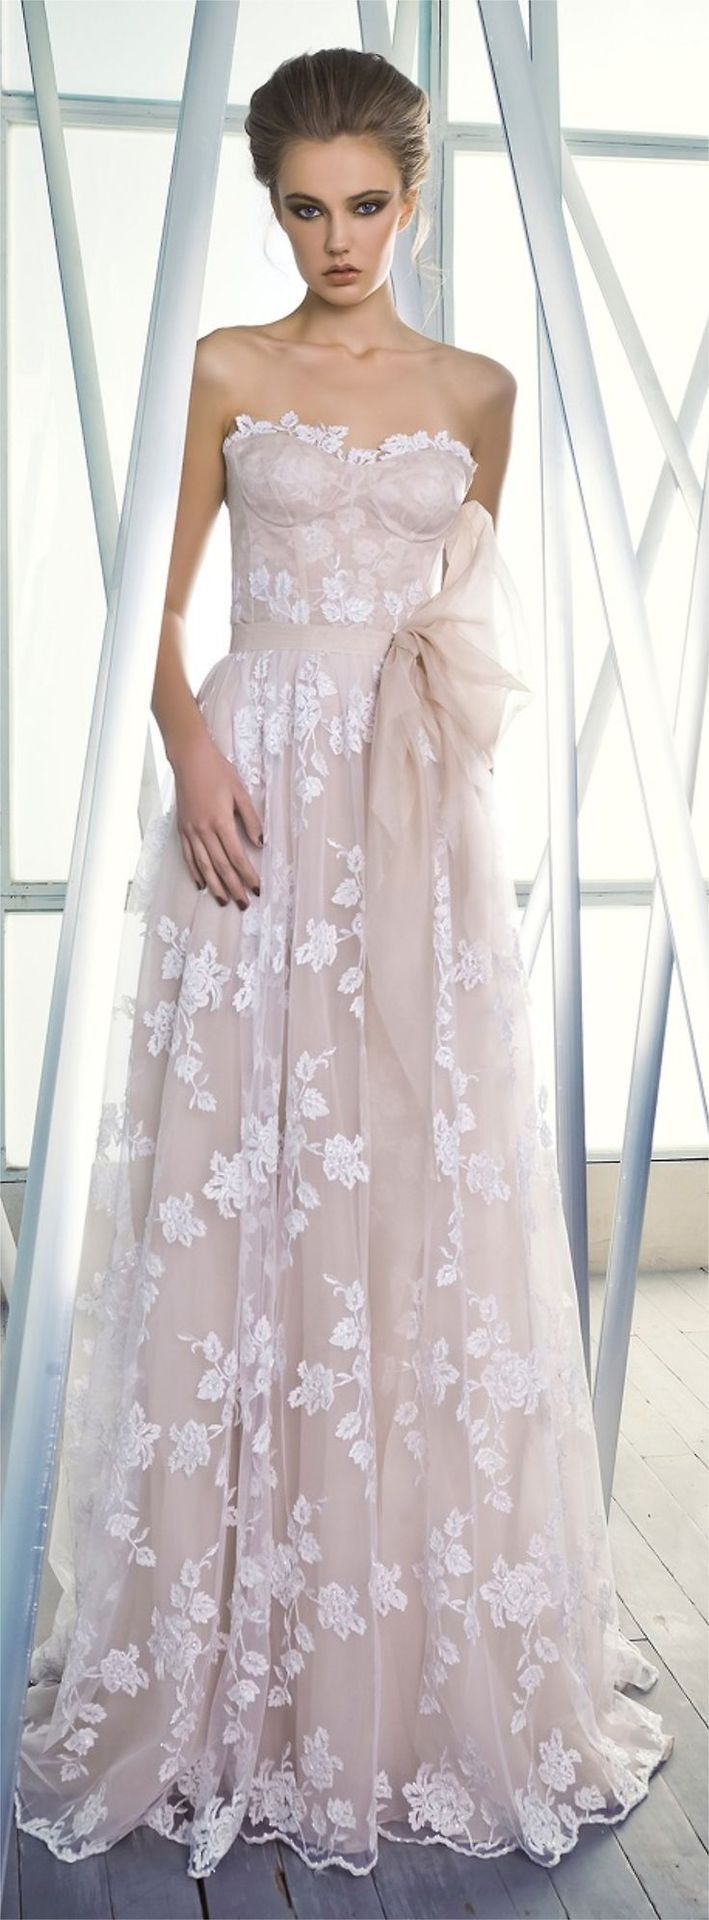 This might the be the cutest dress without looking too much like a wedding dress that I have ever seen